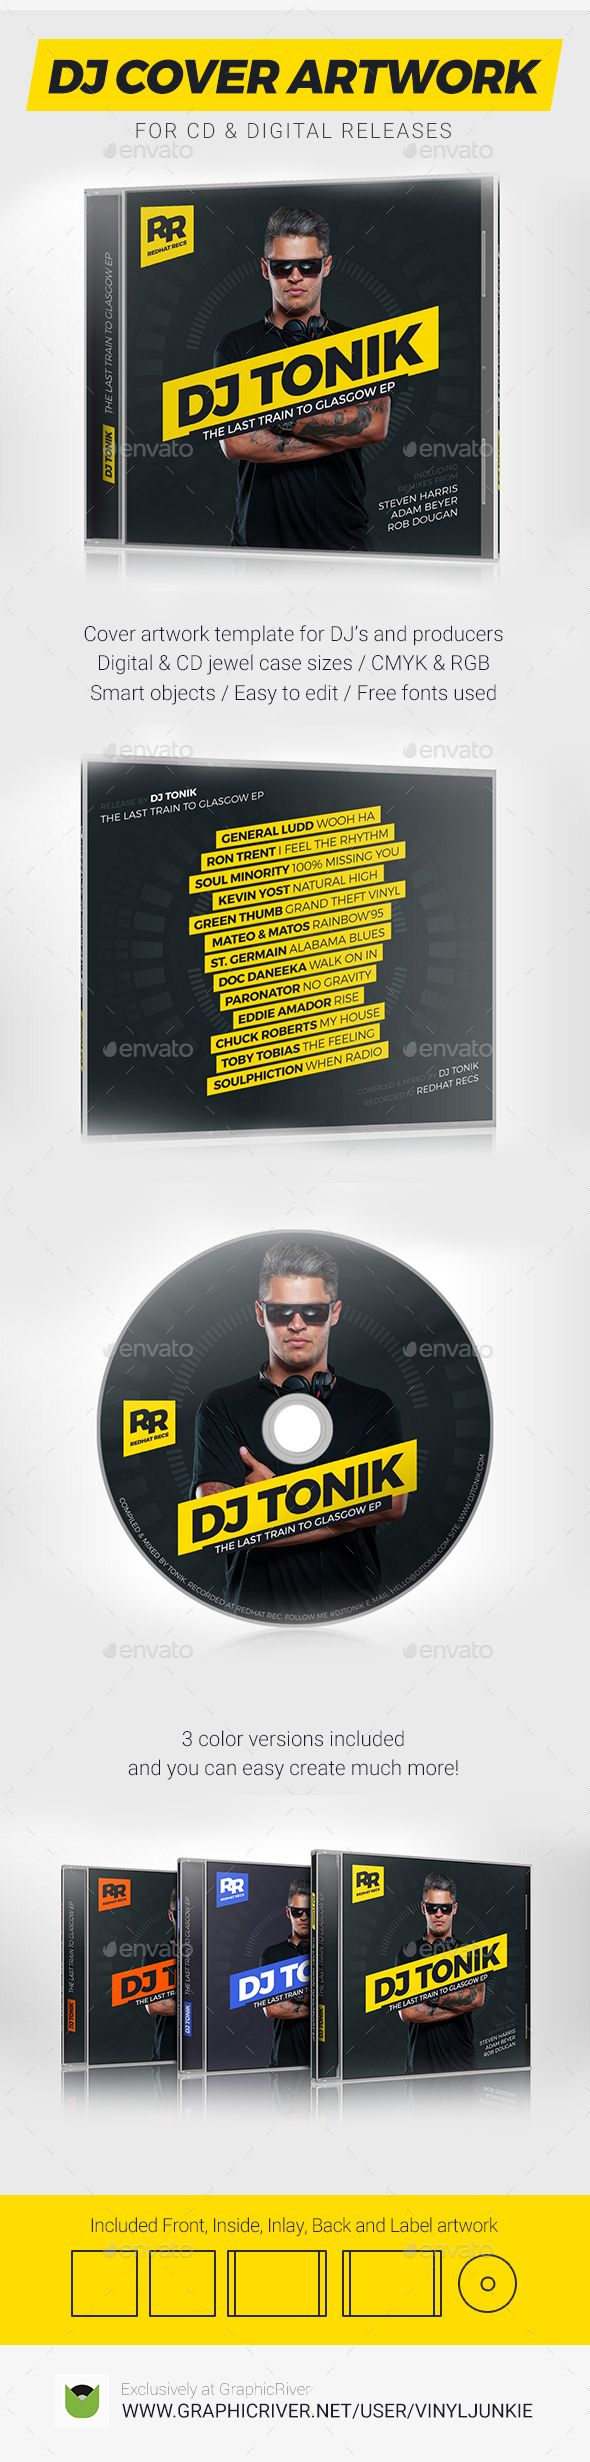 1000 images about dj mix cd cover artwork templates on for Dj press kit template free